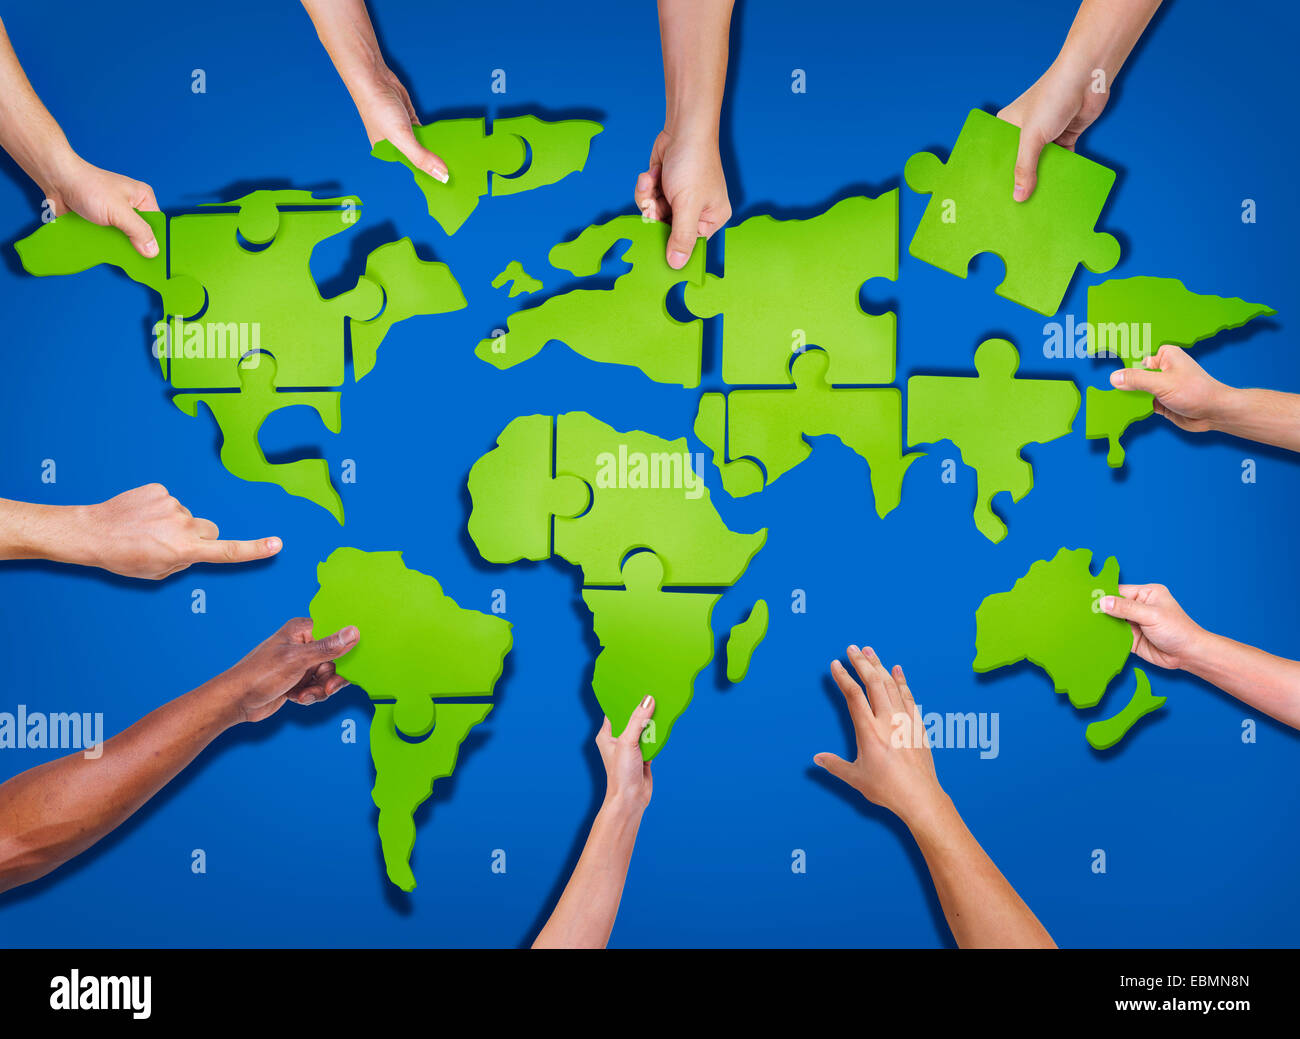 Asia map puzzle stock photos asia map puzzle stock images alamy aerial view of people forming world map with puzzle pieces stock image gumiabroncs Image collections